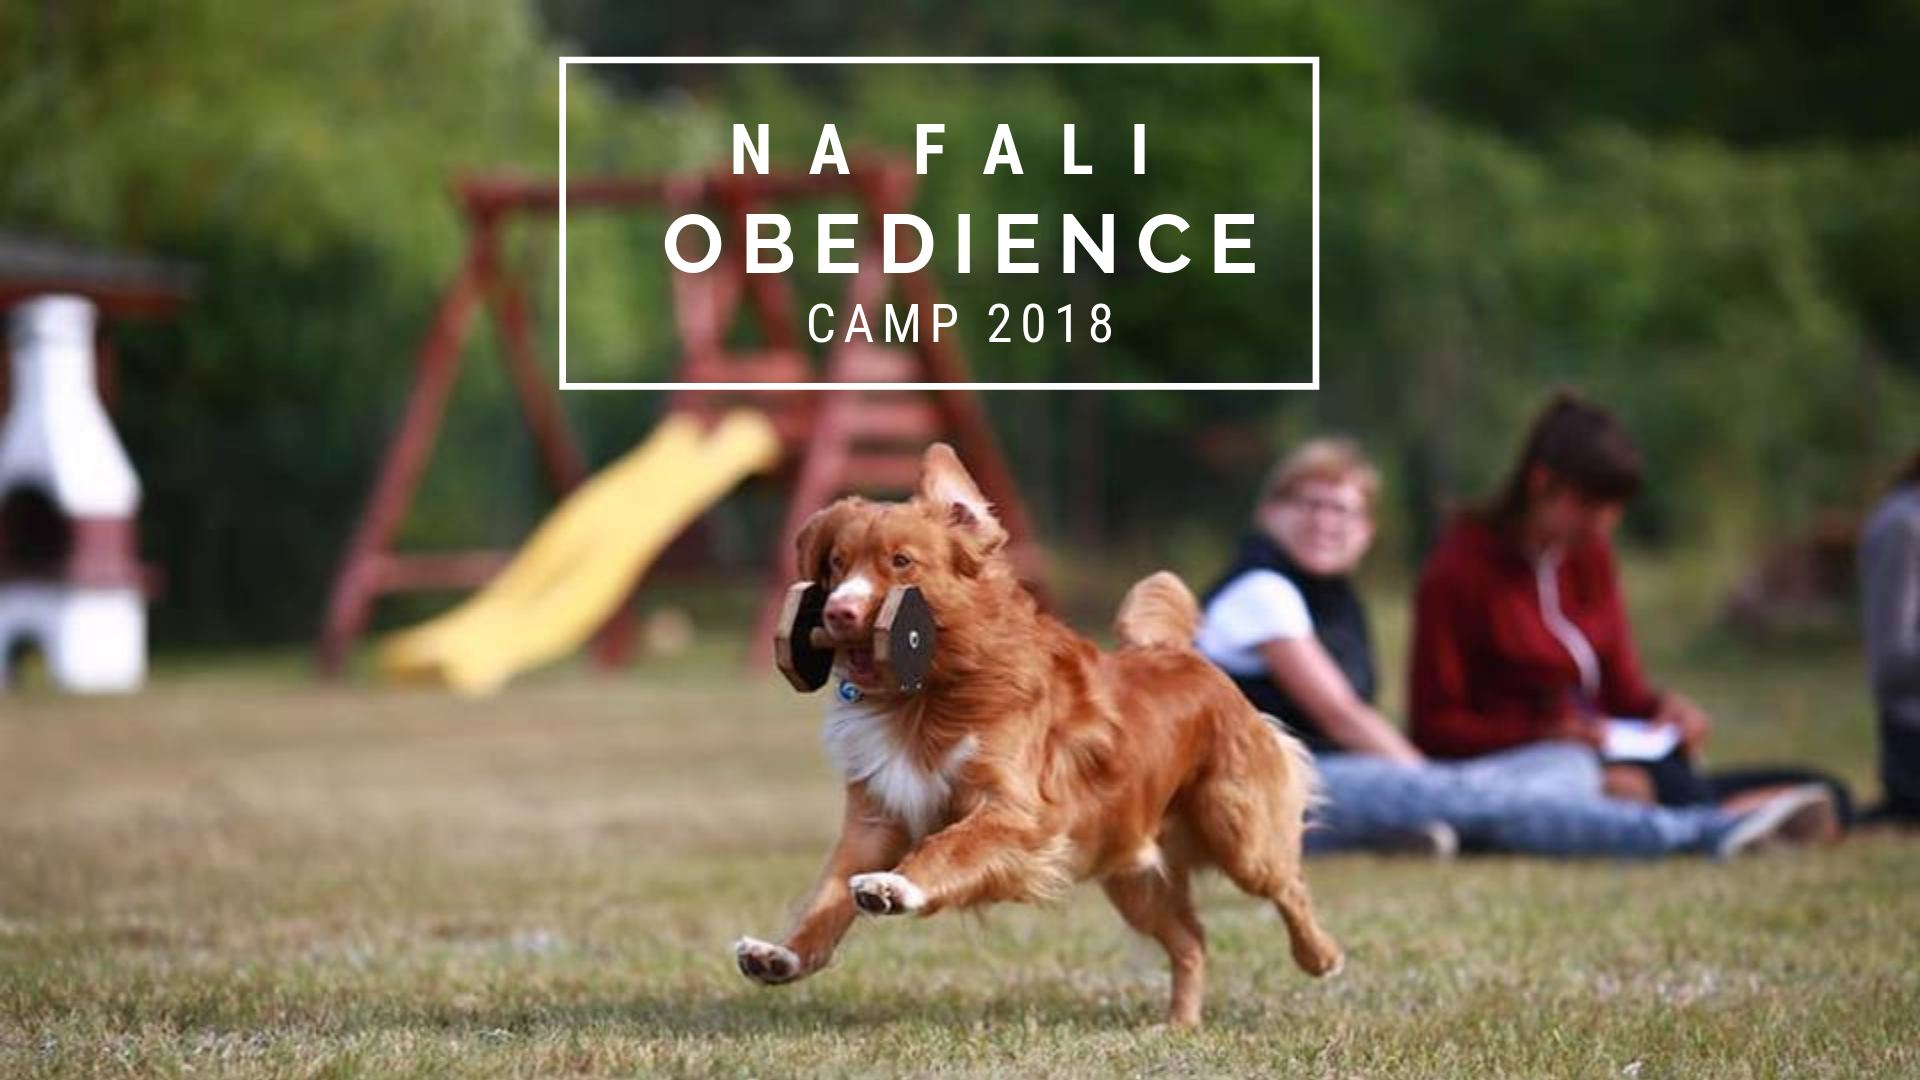 Joanna Hewelt Obedience Camp